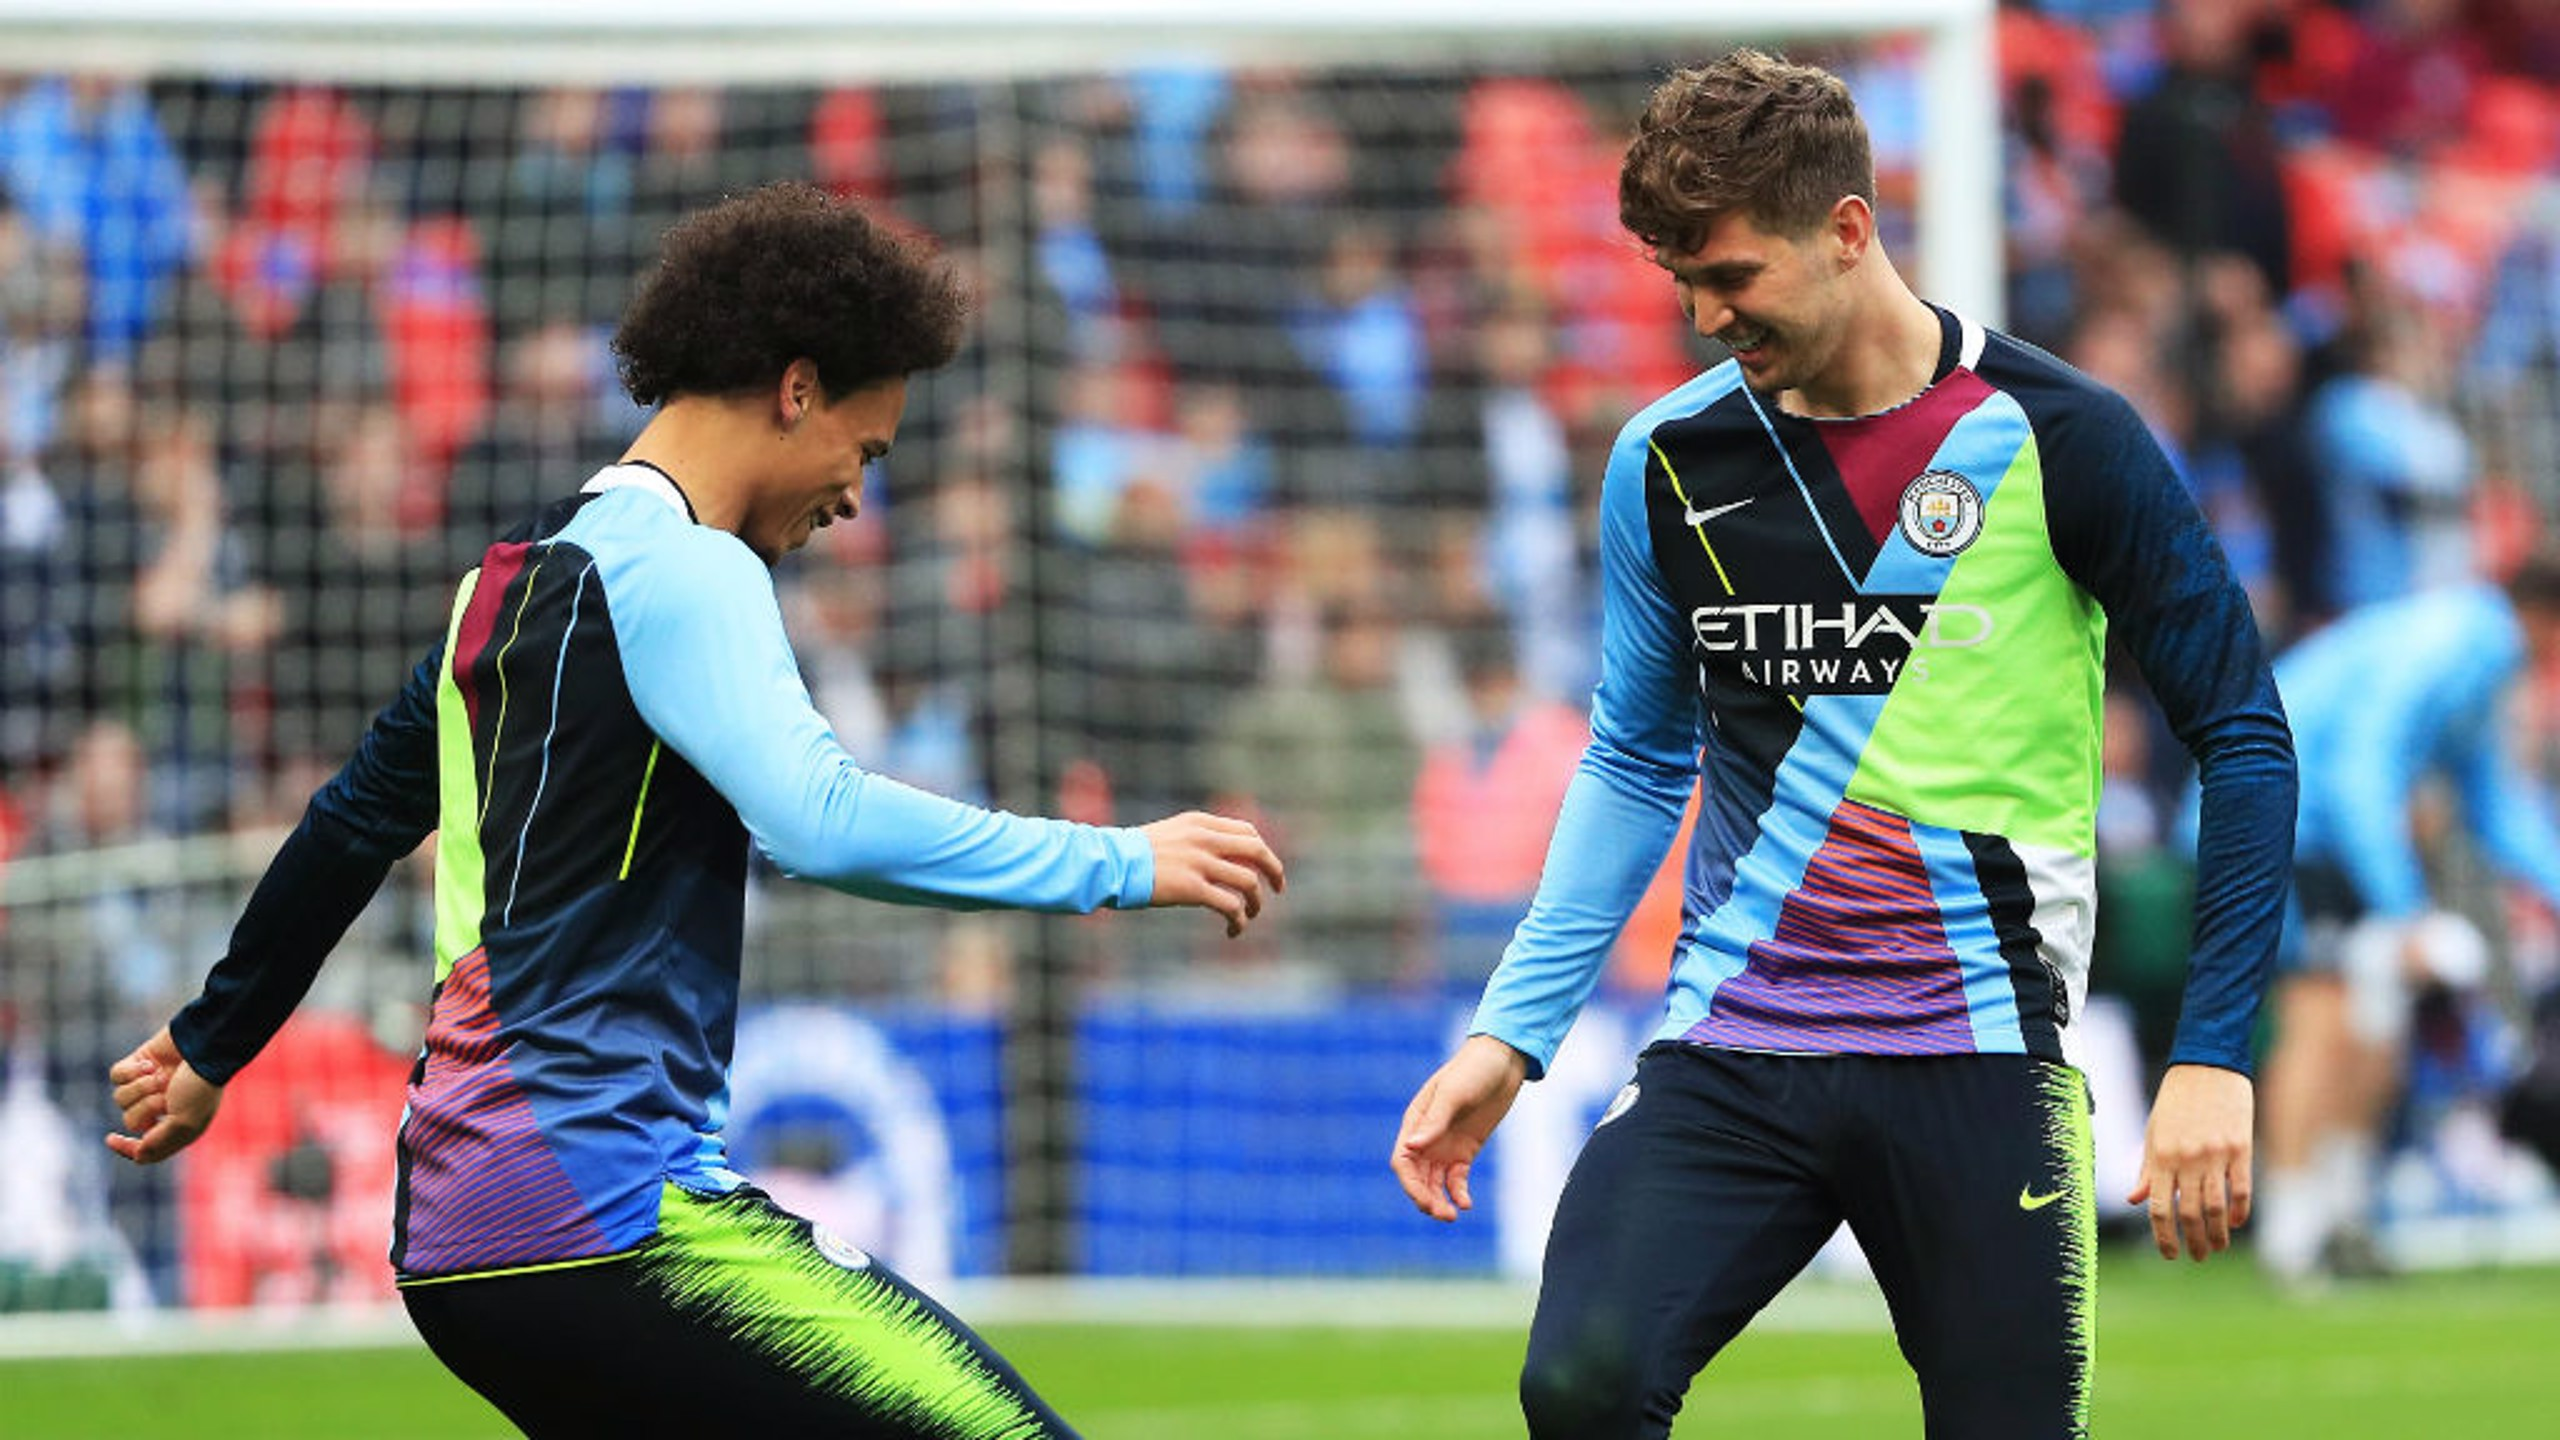 IMPRESSED: The unique jersey has put a smile on the faces of Leroy Sane and John Stones.